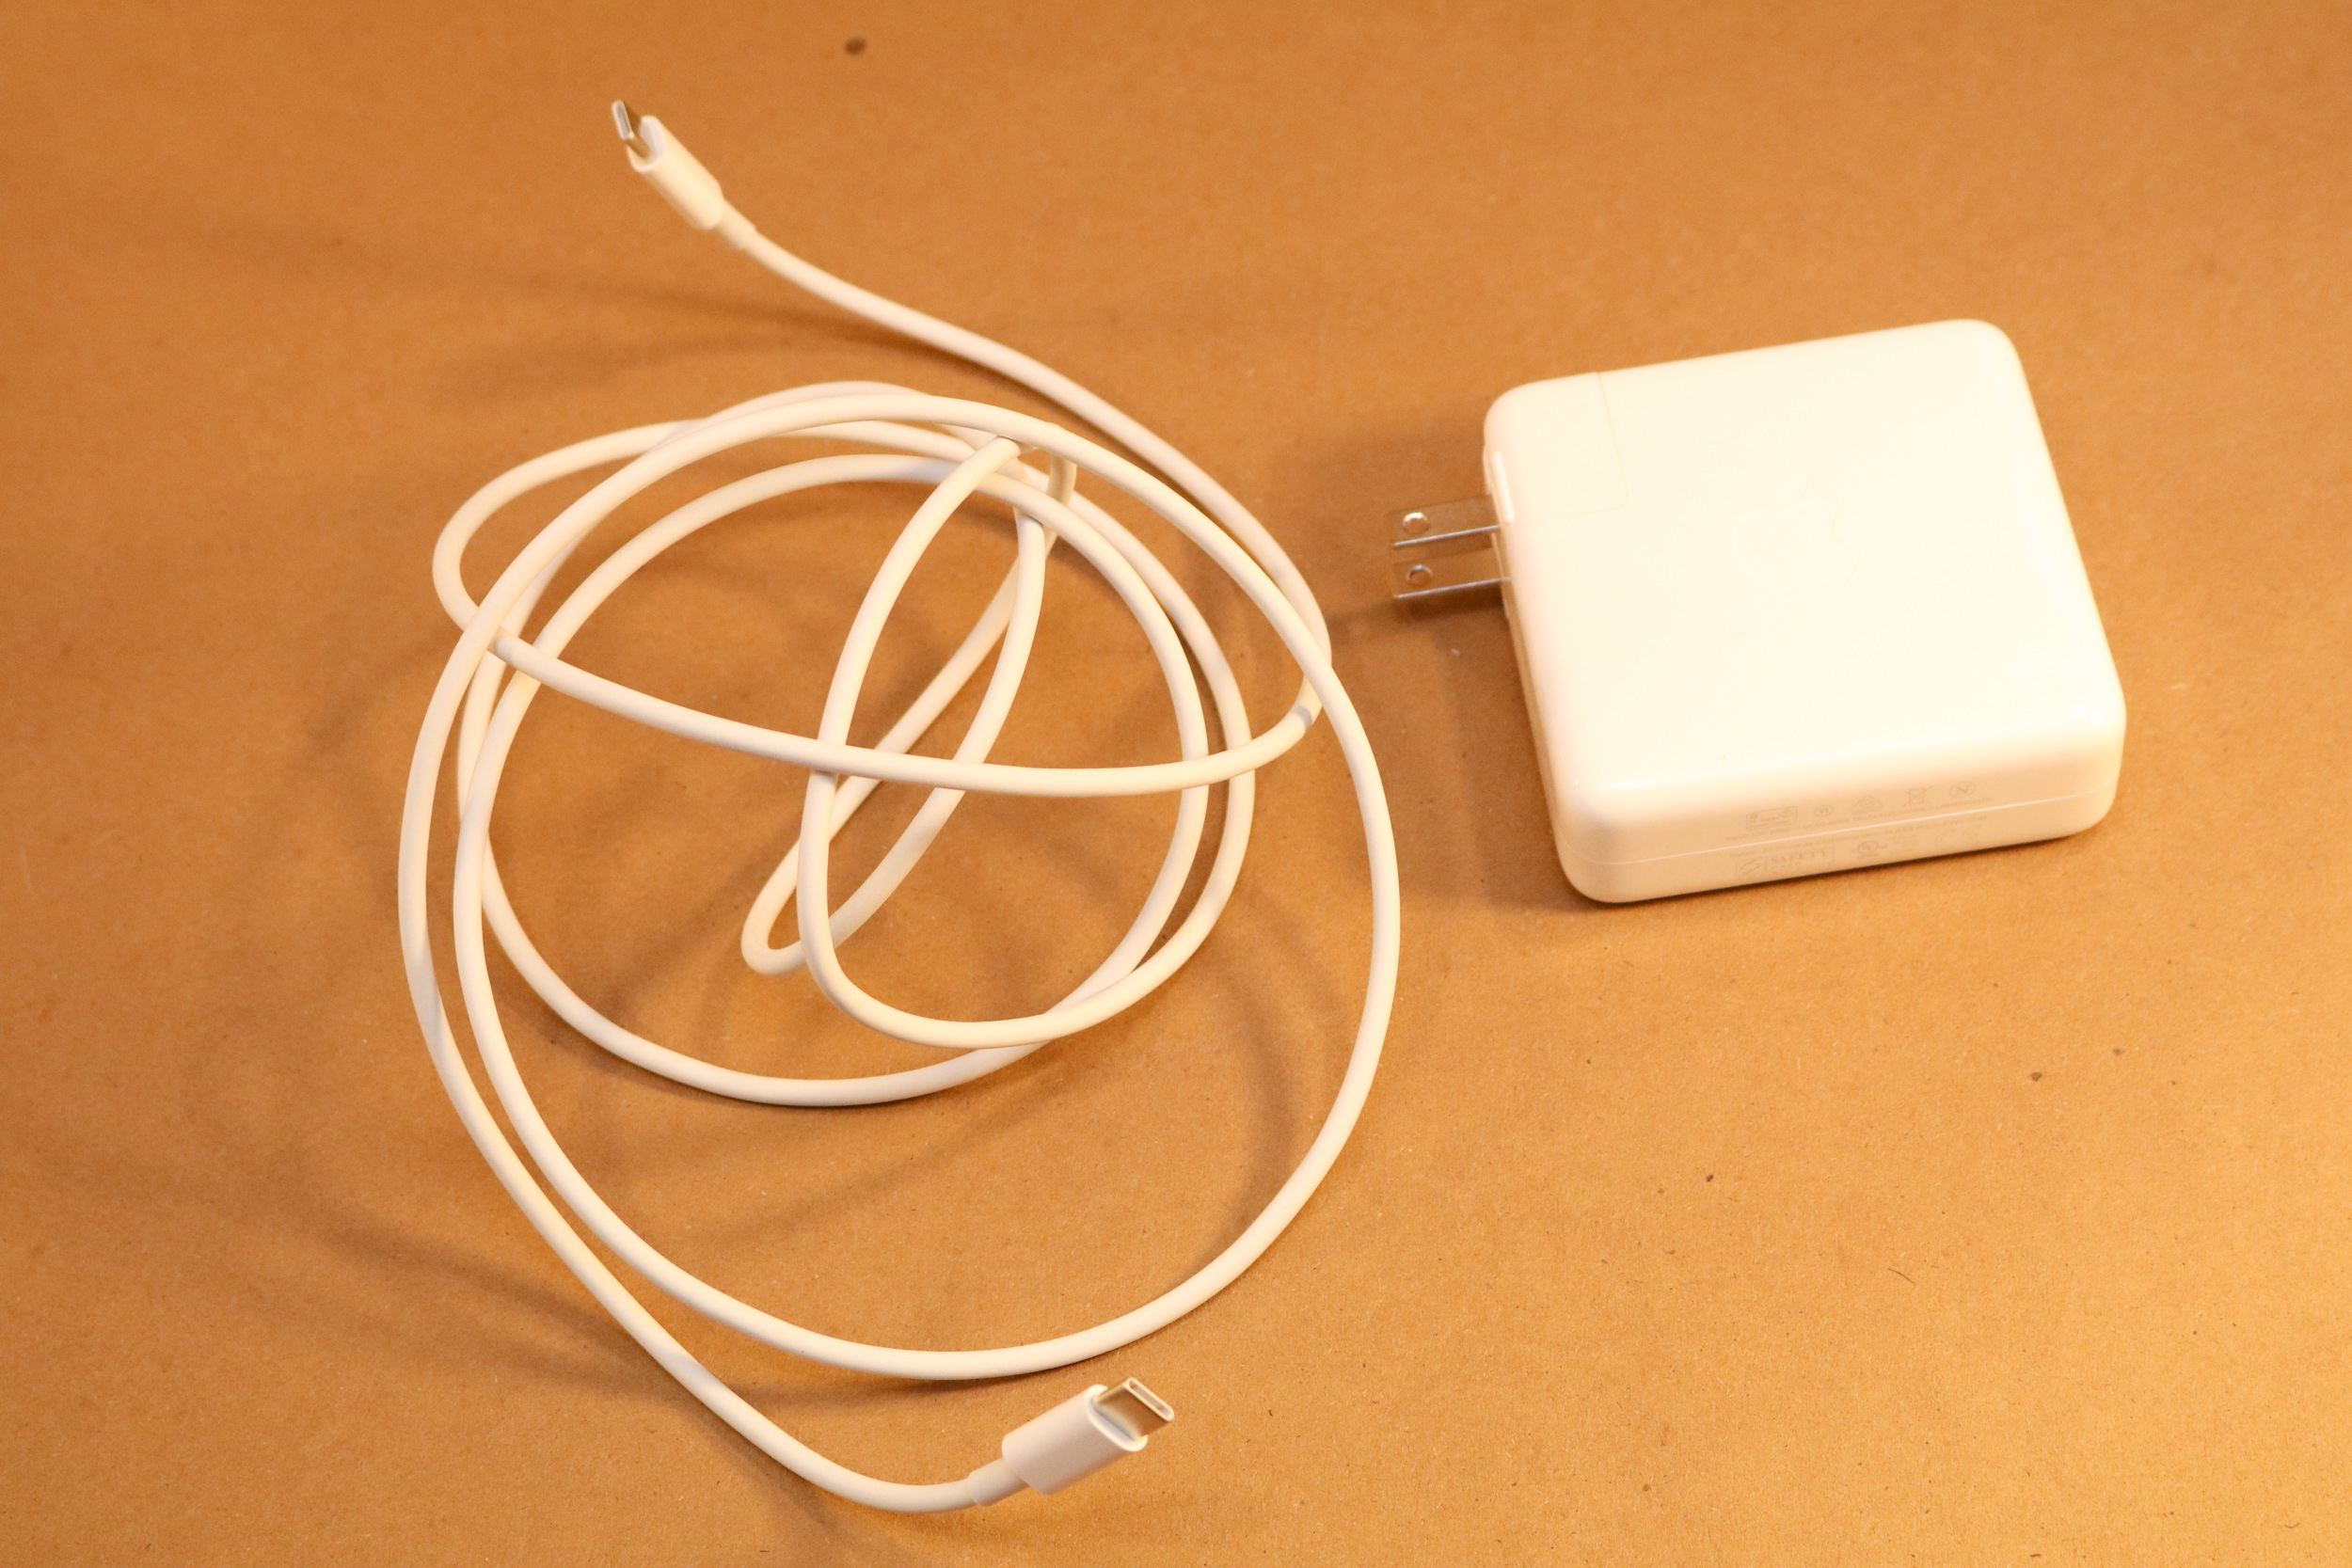 The included USB-C cable and wall charger.